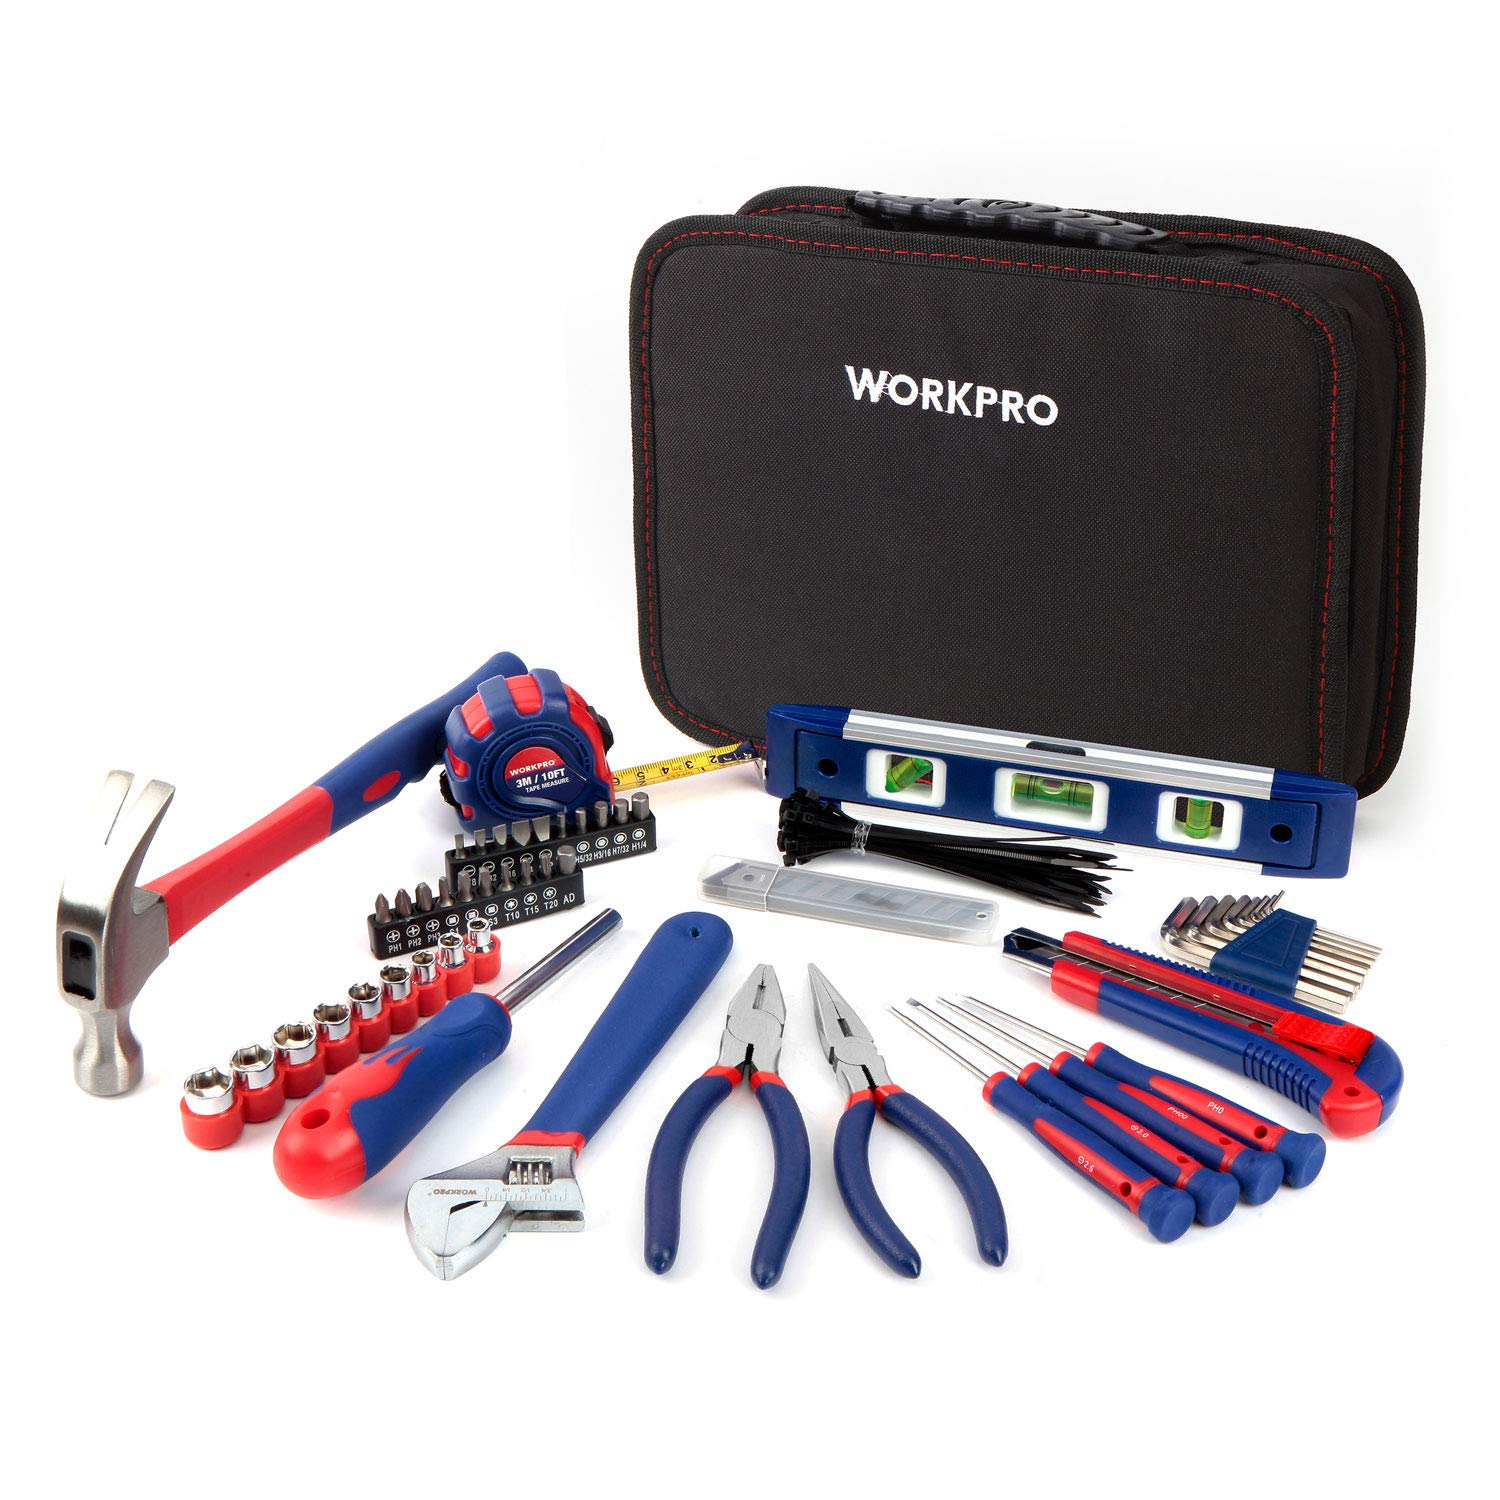 Workpro 100-Piece Kitchen Drawer Home Tool Kit by WORKPRO